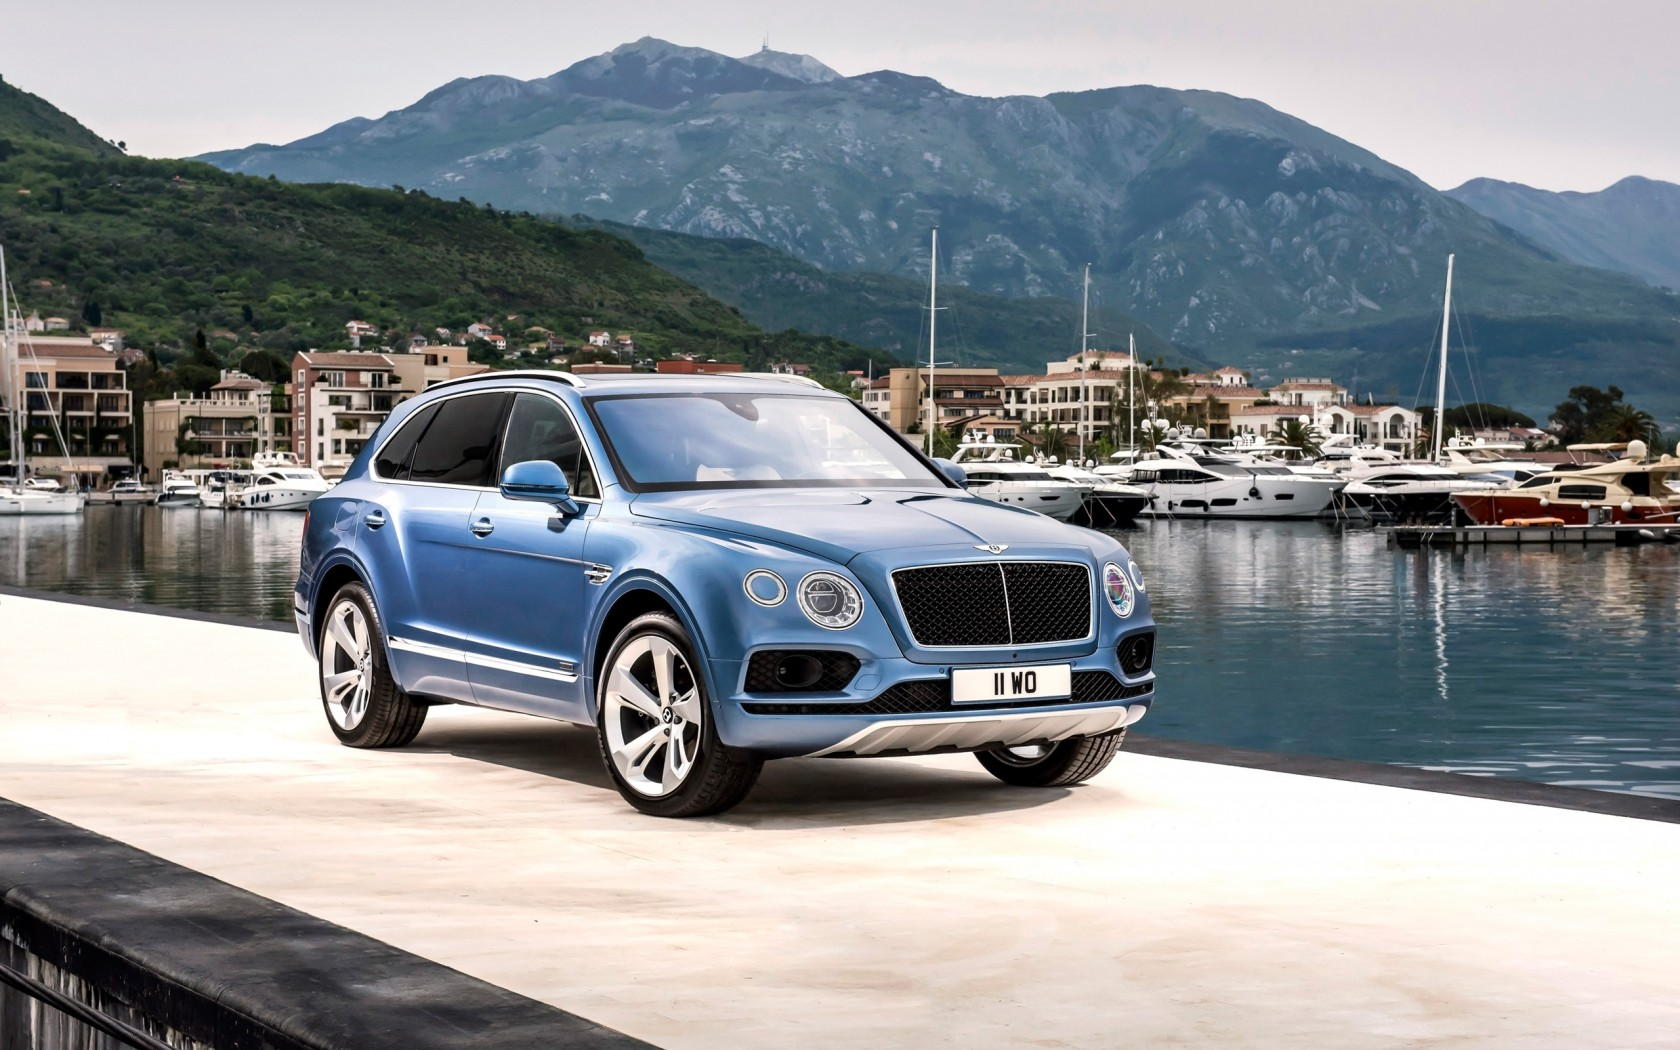 2017 Bentley Bentayga Diesel 2 Wallpaper | HD Car Wallpapers